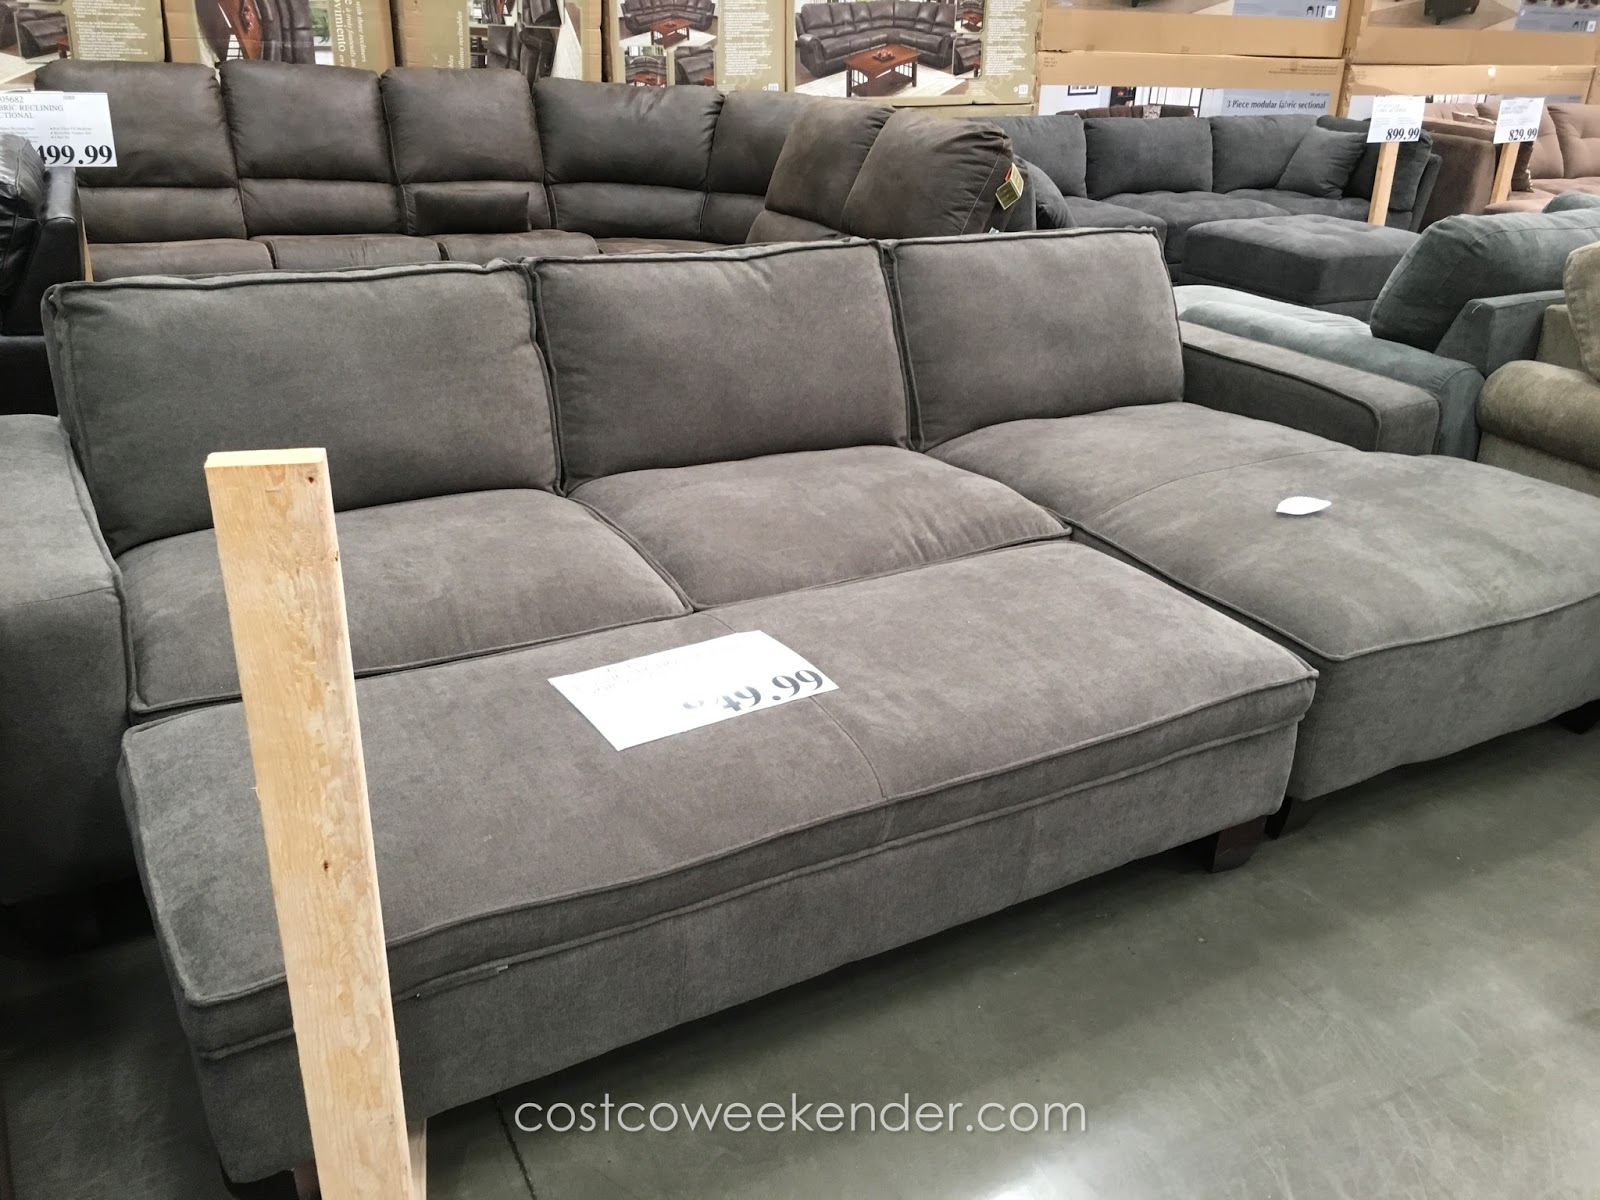 Chaise Sectional Sofa with Storage Ottoman   Costco Weekender